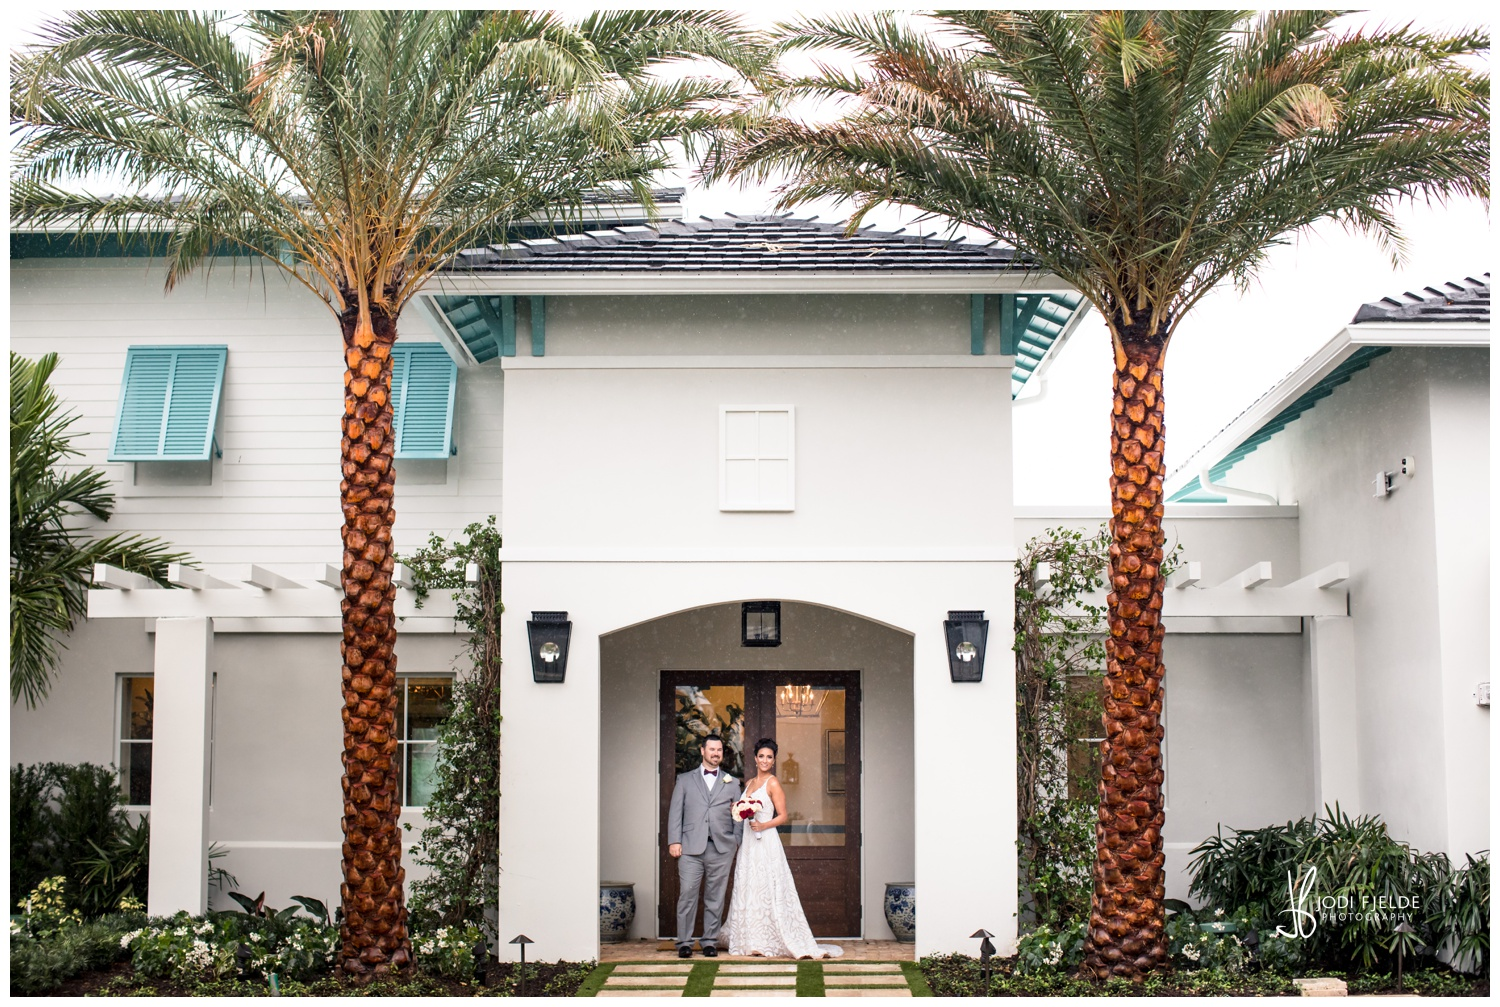 Pelican-Club-Jupiter-Wedding-Bride-Groom-Palm-Tree_0100.jpg